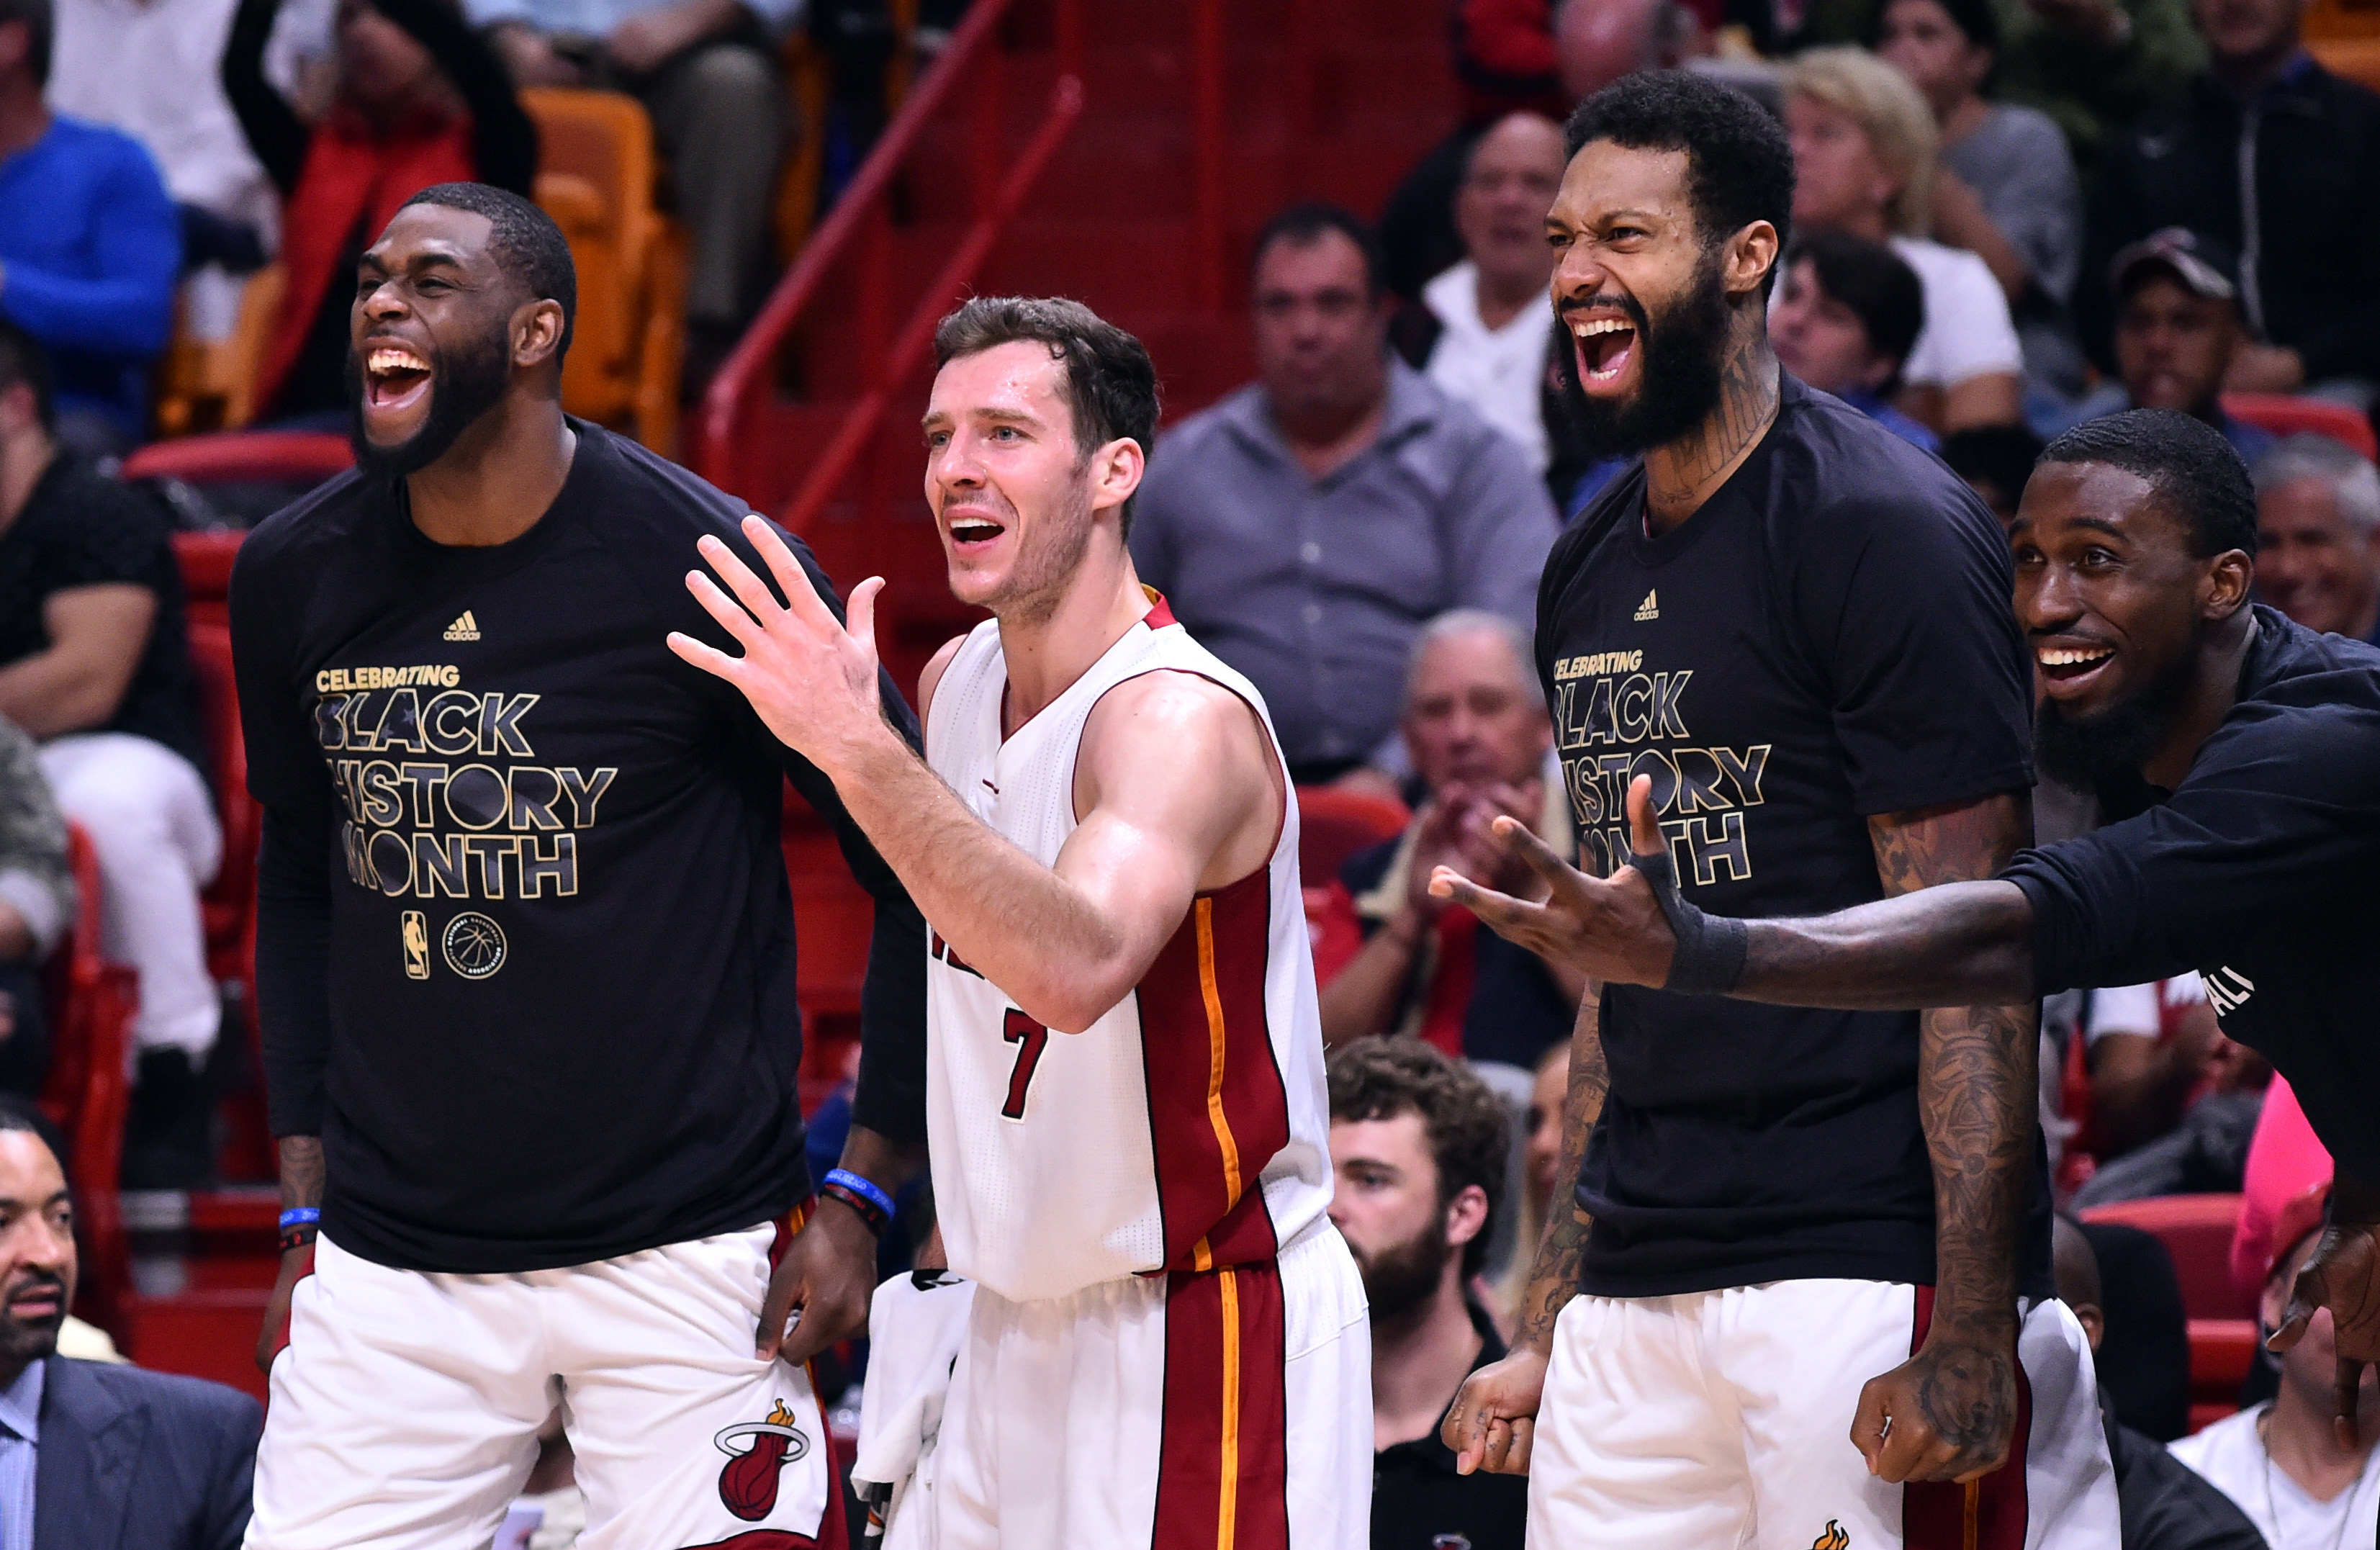 Feb 1, 2017; Miami, FL, USA; Miami Heat forward Willie Reed (L) Heat guard Goran Dragic (C) Heat forward James Johnson (third from left) and  Heat forward Okaro White (R) laugh on the bench during the second half against the Atlanta Hawks at American Airlines Arena. Miami Heat won 116-93. Mandatory Credit: Steve Mitchell-USA TODAY Sports